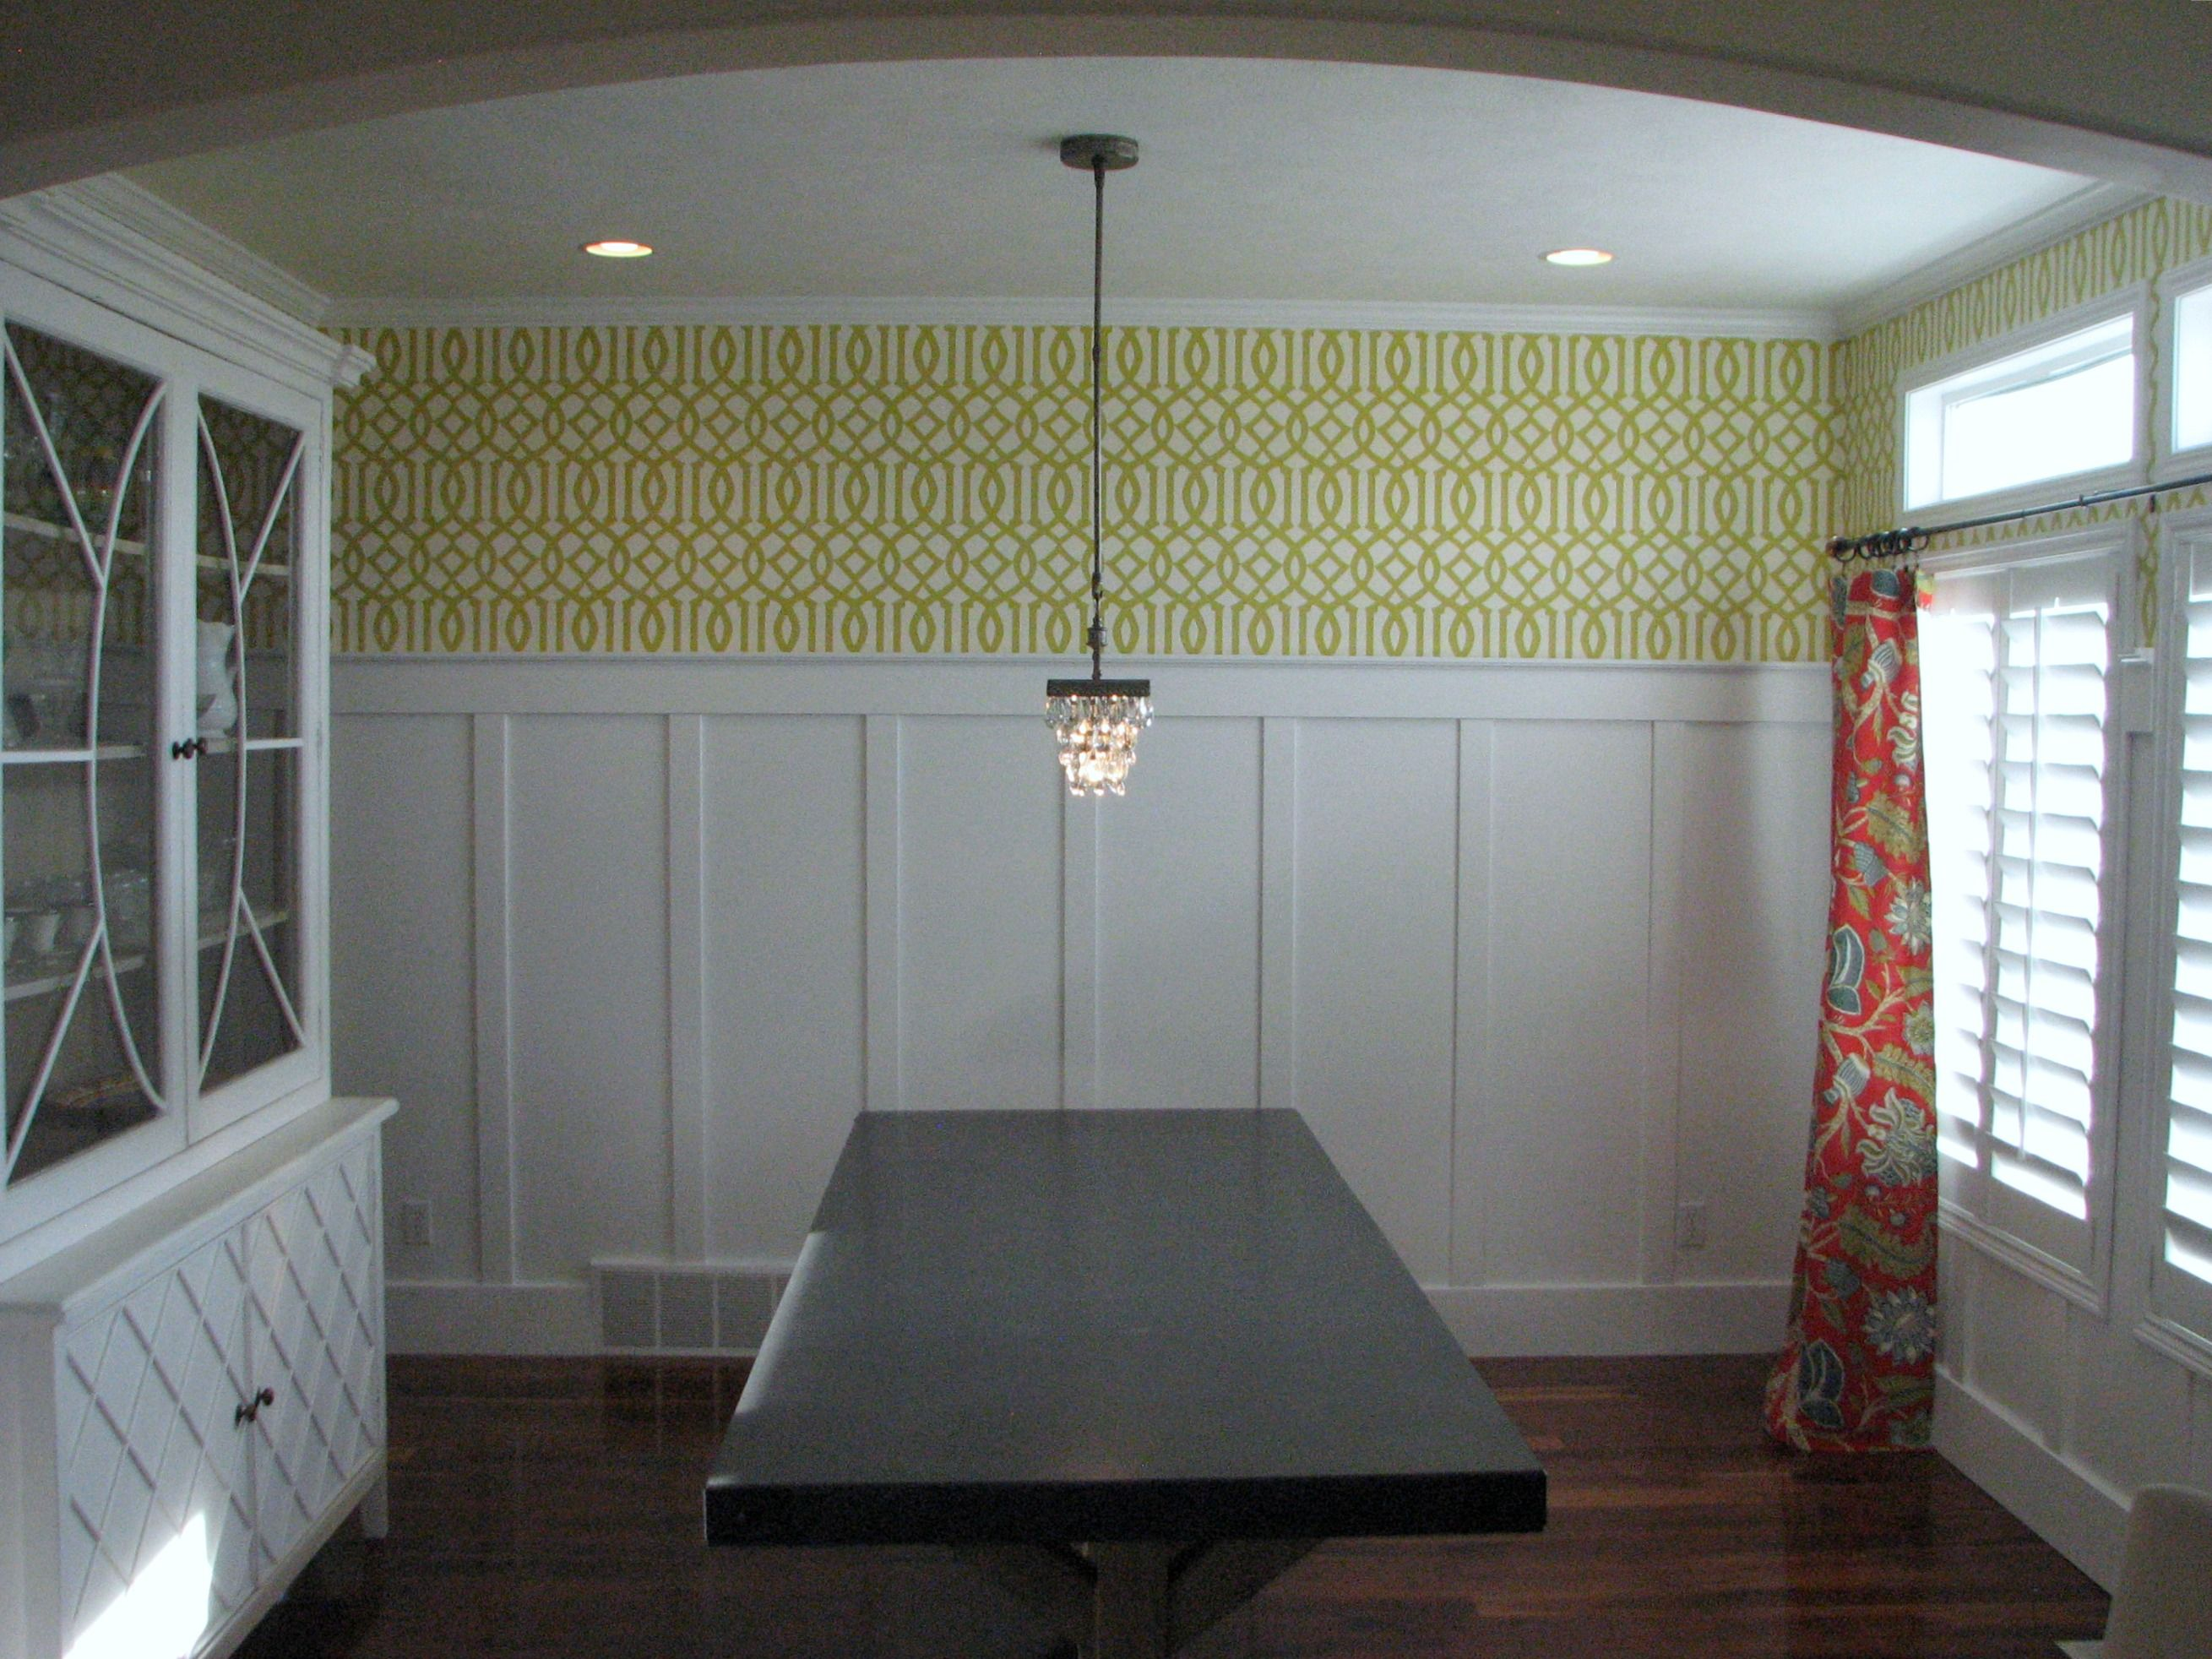 Can You Pair Board And Batten With Patterned Wallpaper For The - Board and batten dining room